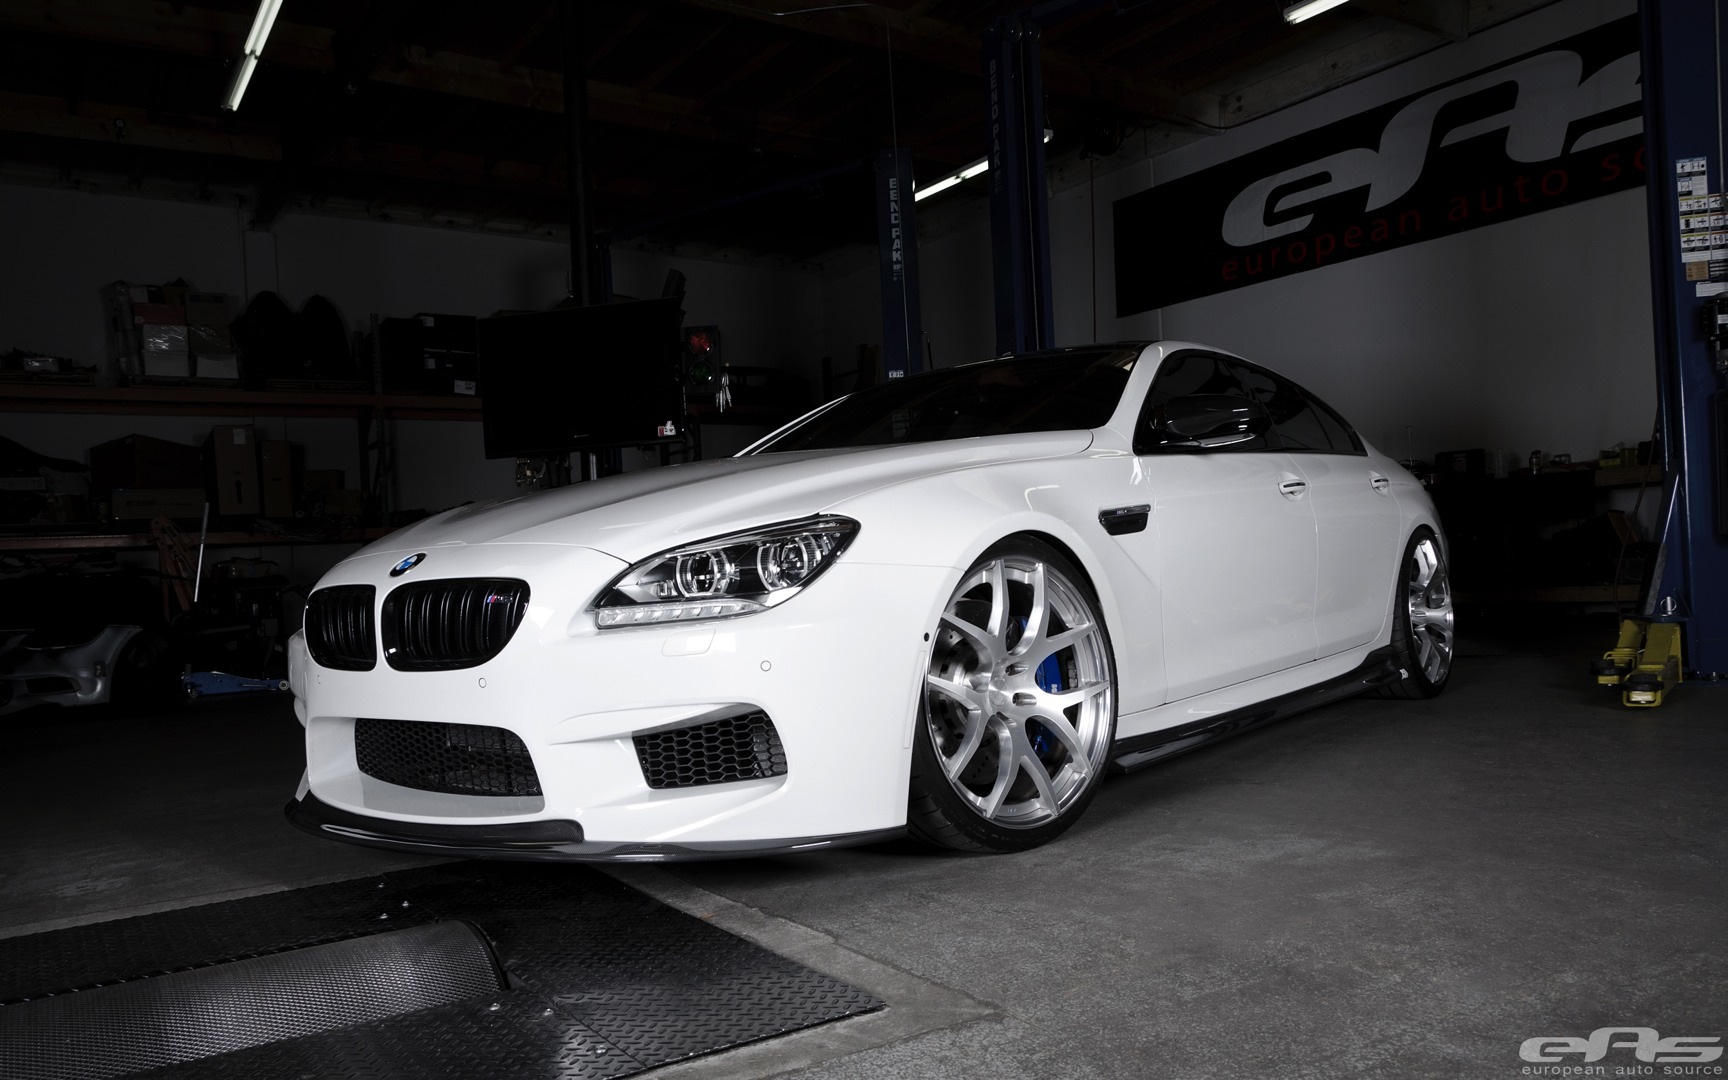 Sedan Vs Coupe >> Stunning Alpine White BMW M6 Gran Coupe Gets Arkym Body Kit - autoevolution